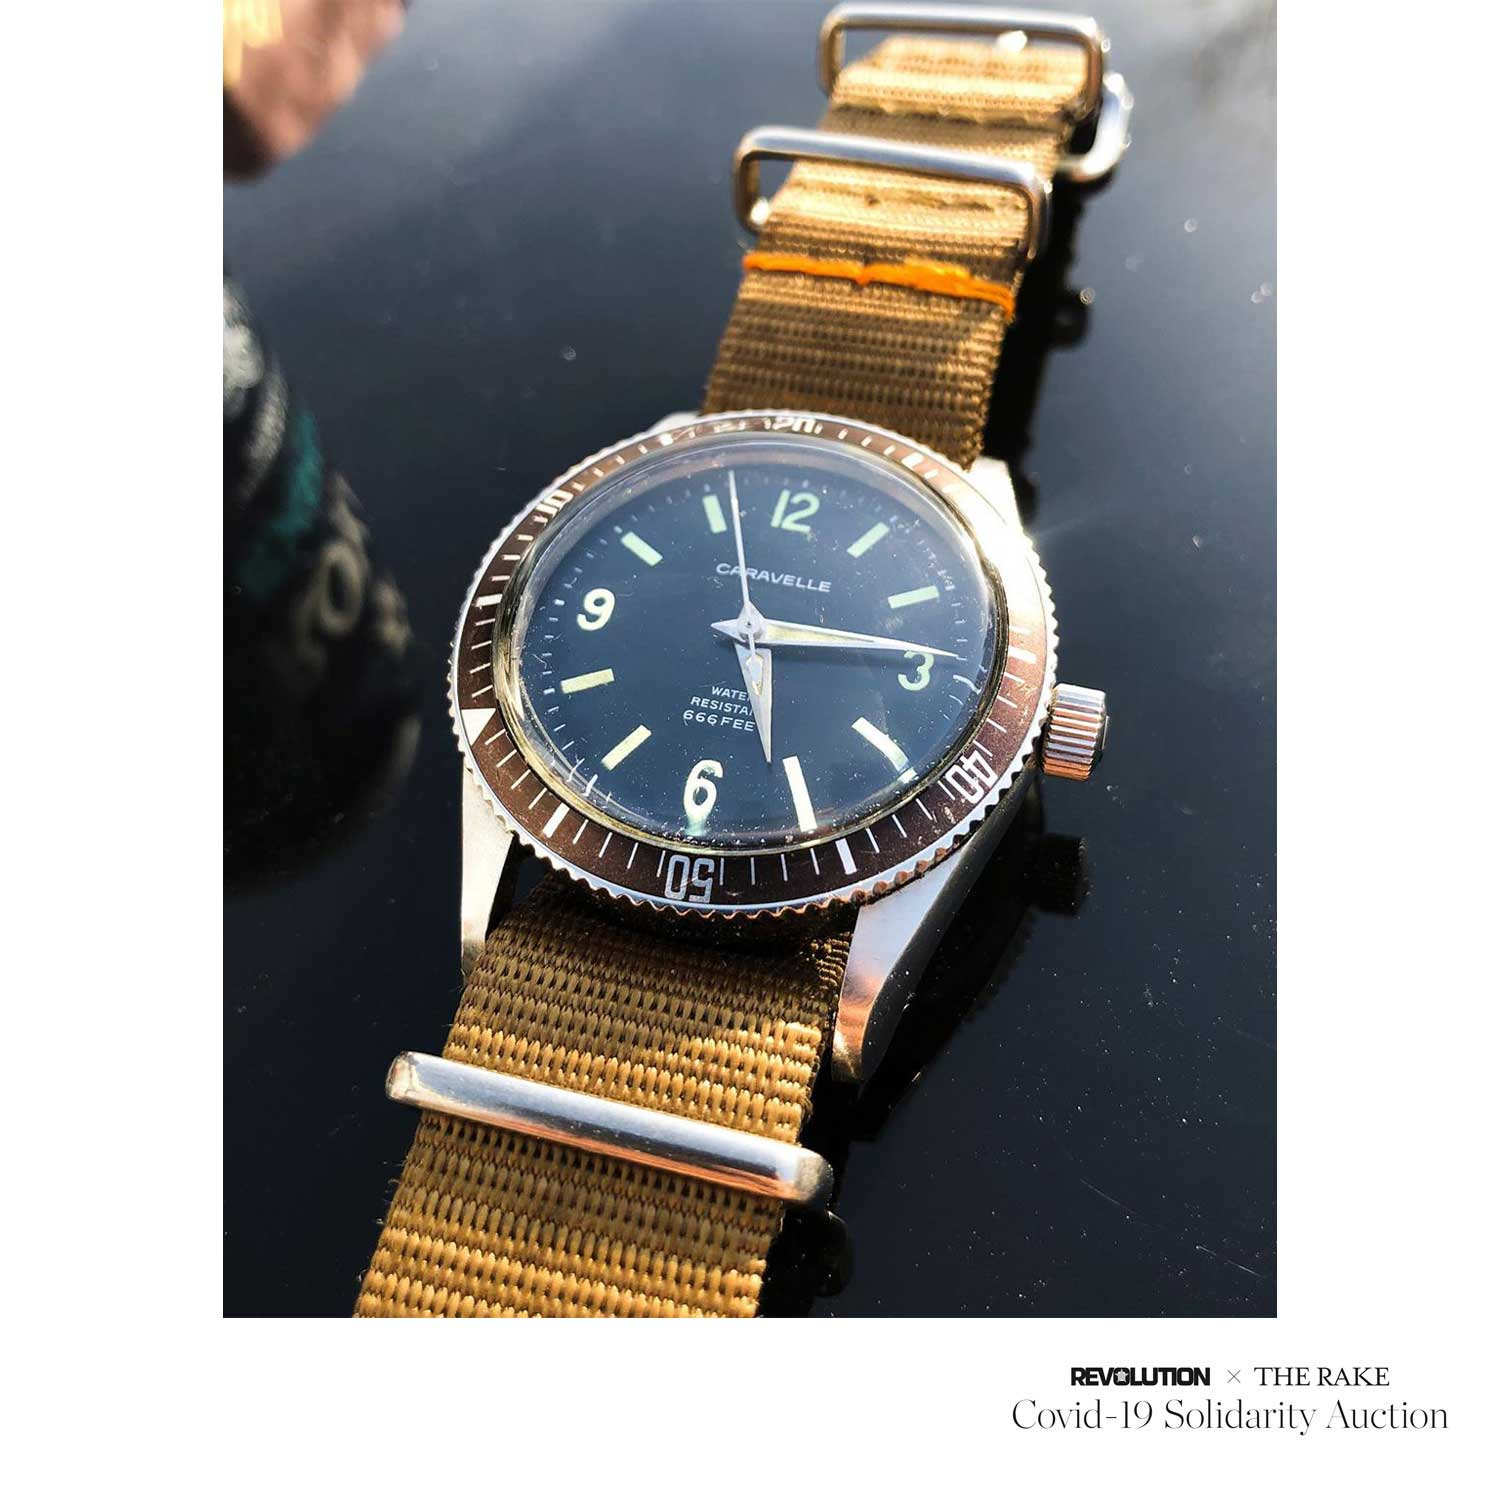 Caravelle Seahunter Vintage Diver (c. 1960) donated by @timeandgrooves for Revolution x The Rake Covid-19 Solidarity Auction